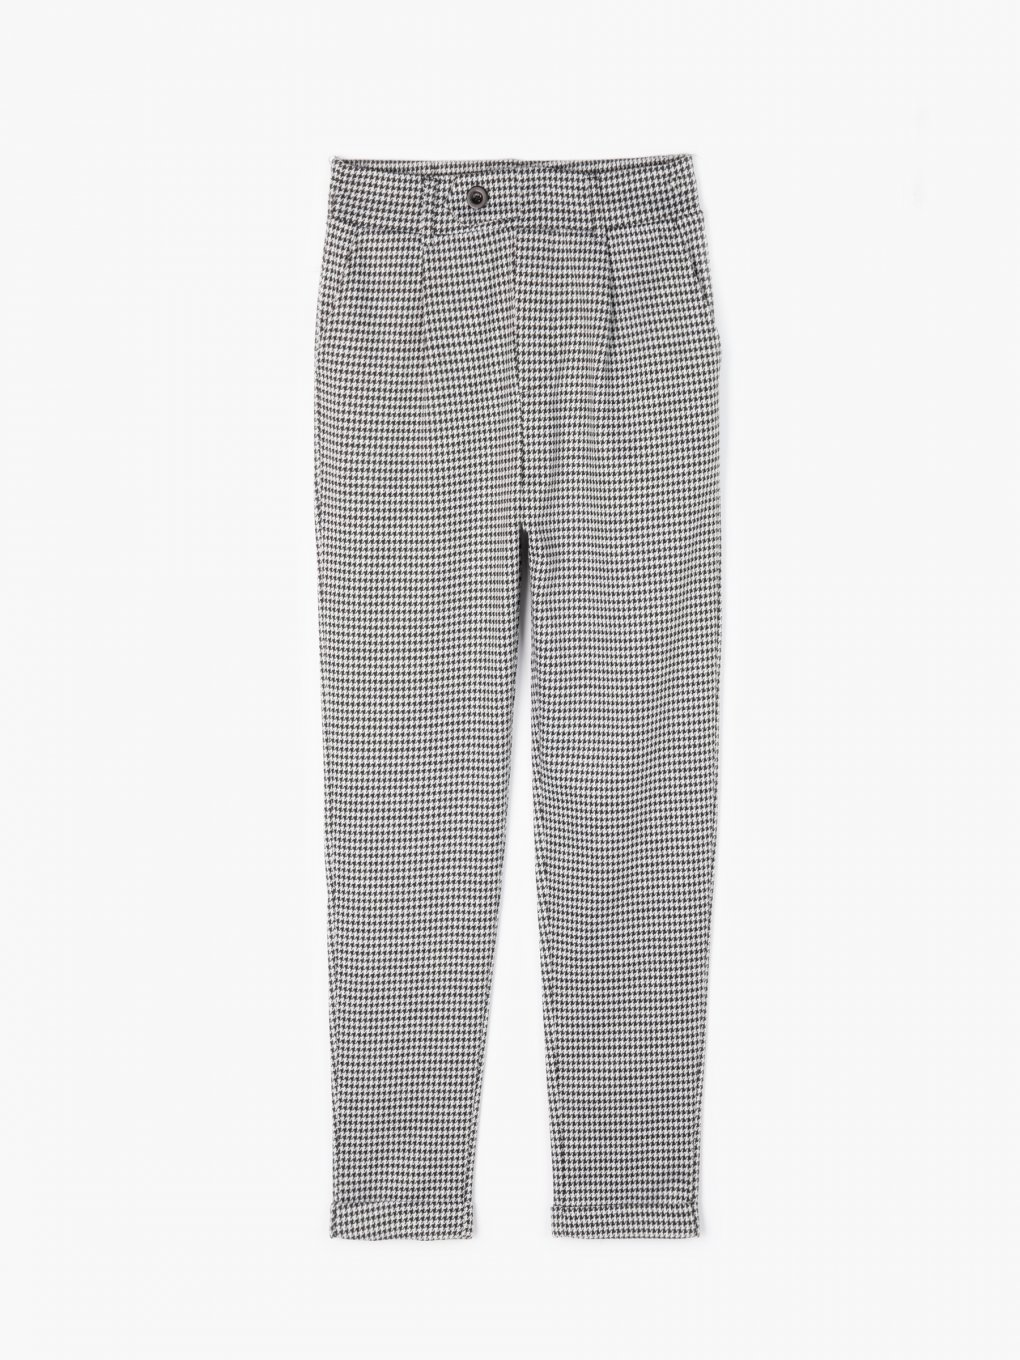 Houndstooth pattern stretch trousers